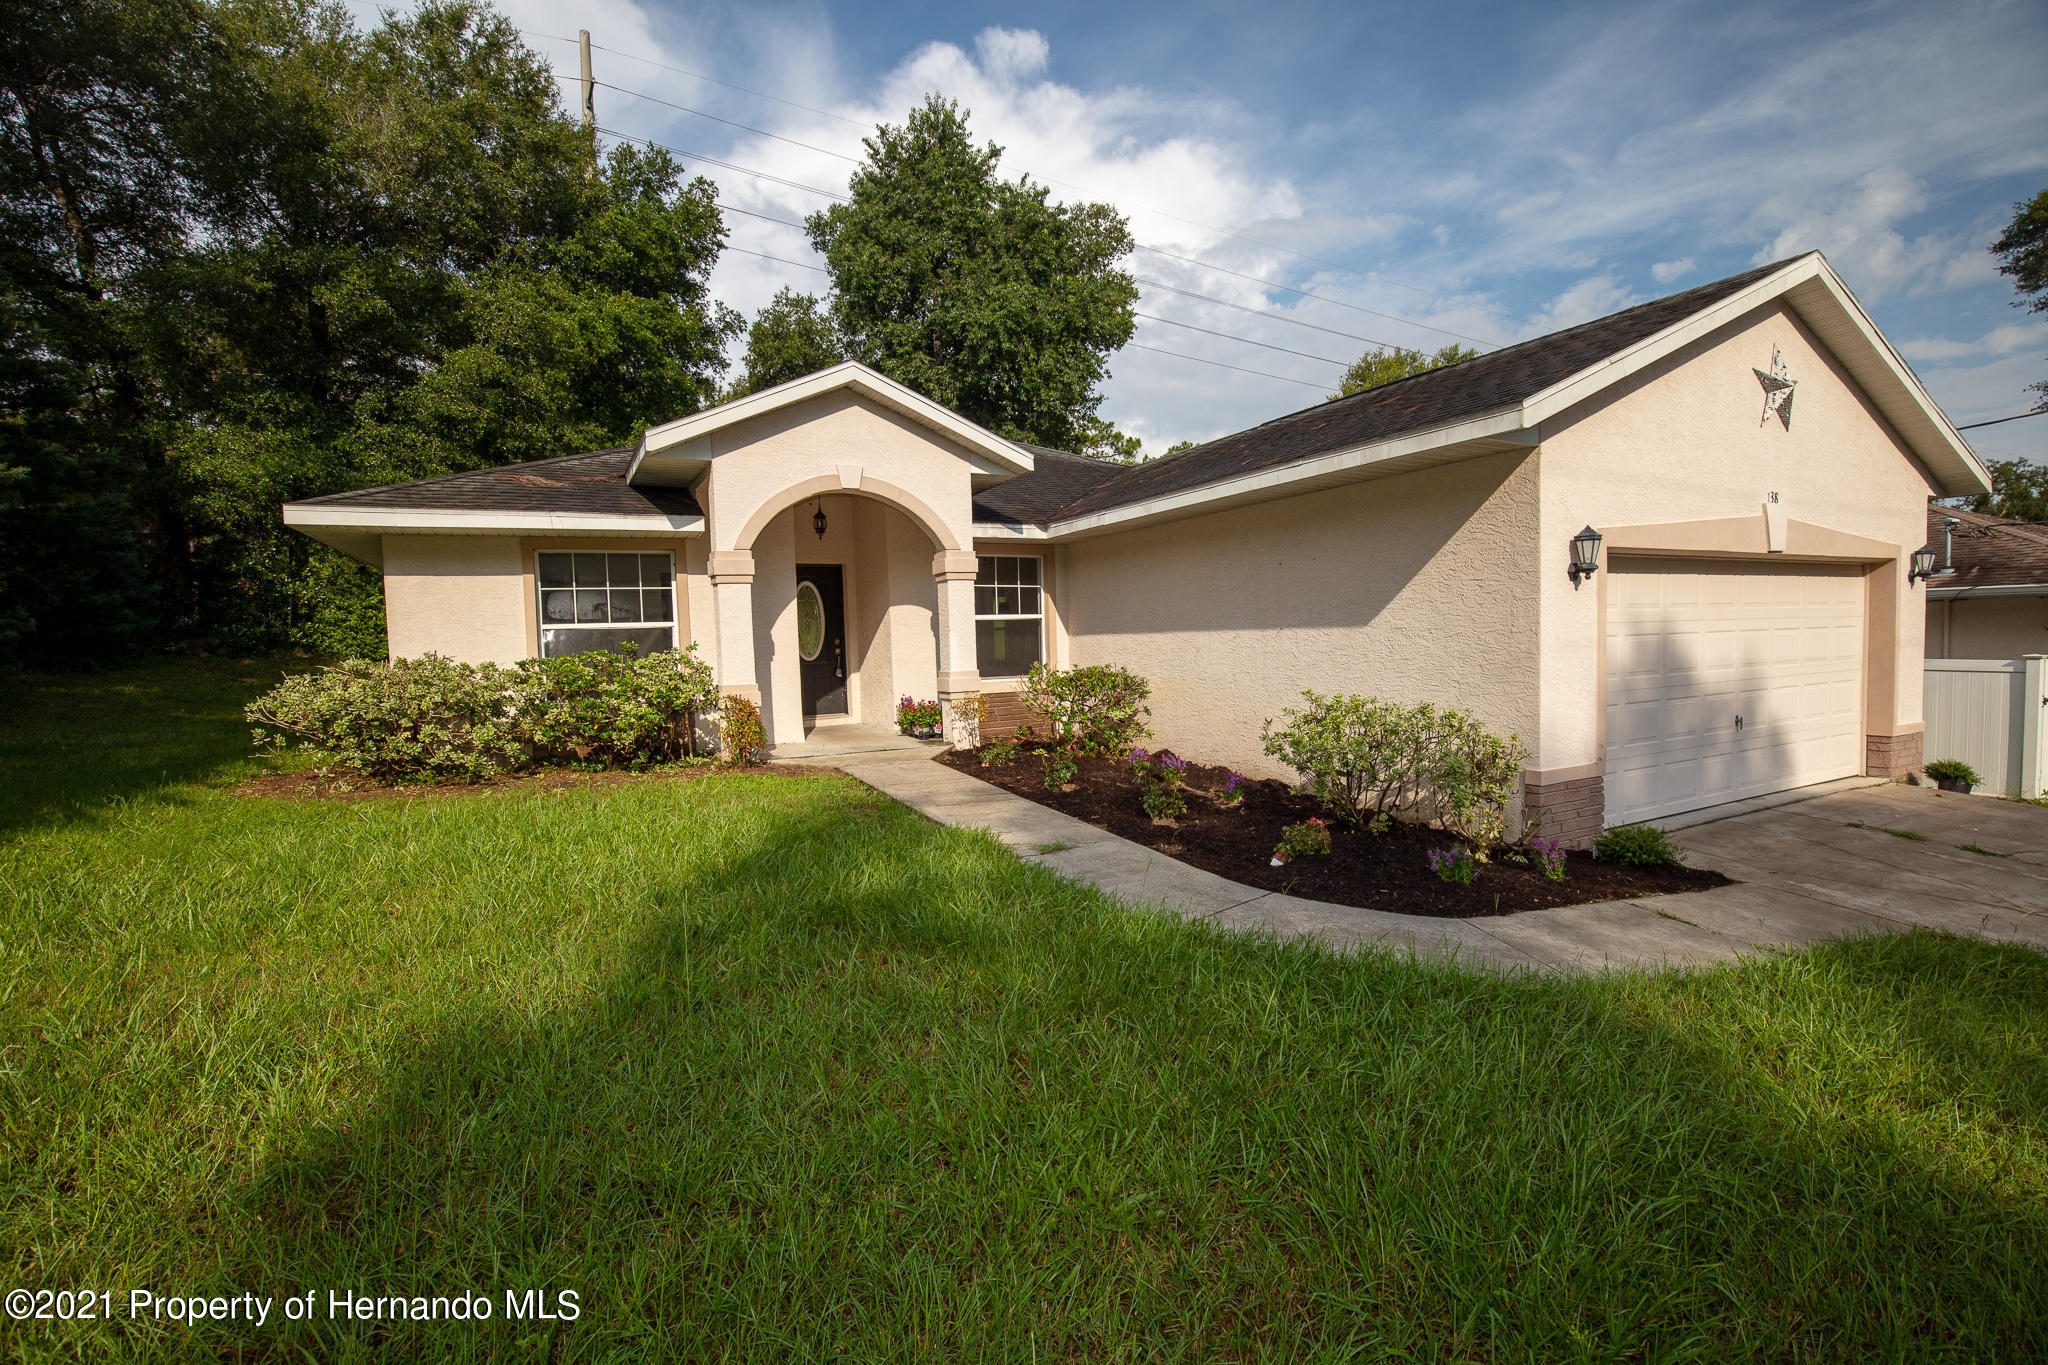 Details for 138 N. Savary Avenue, Inverness, FL 34453